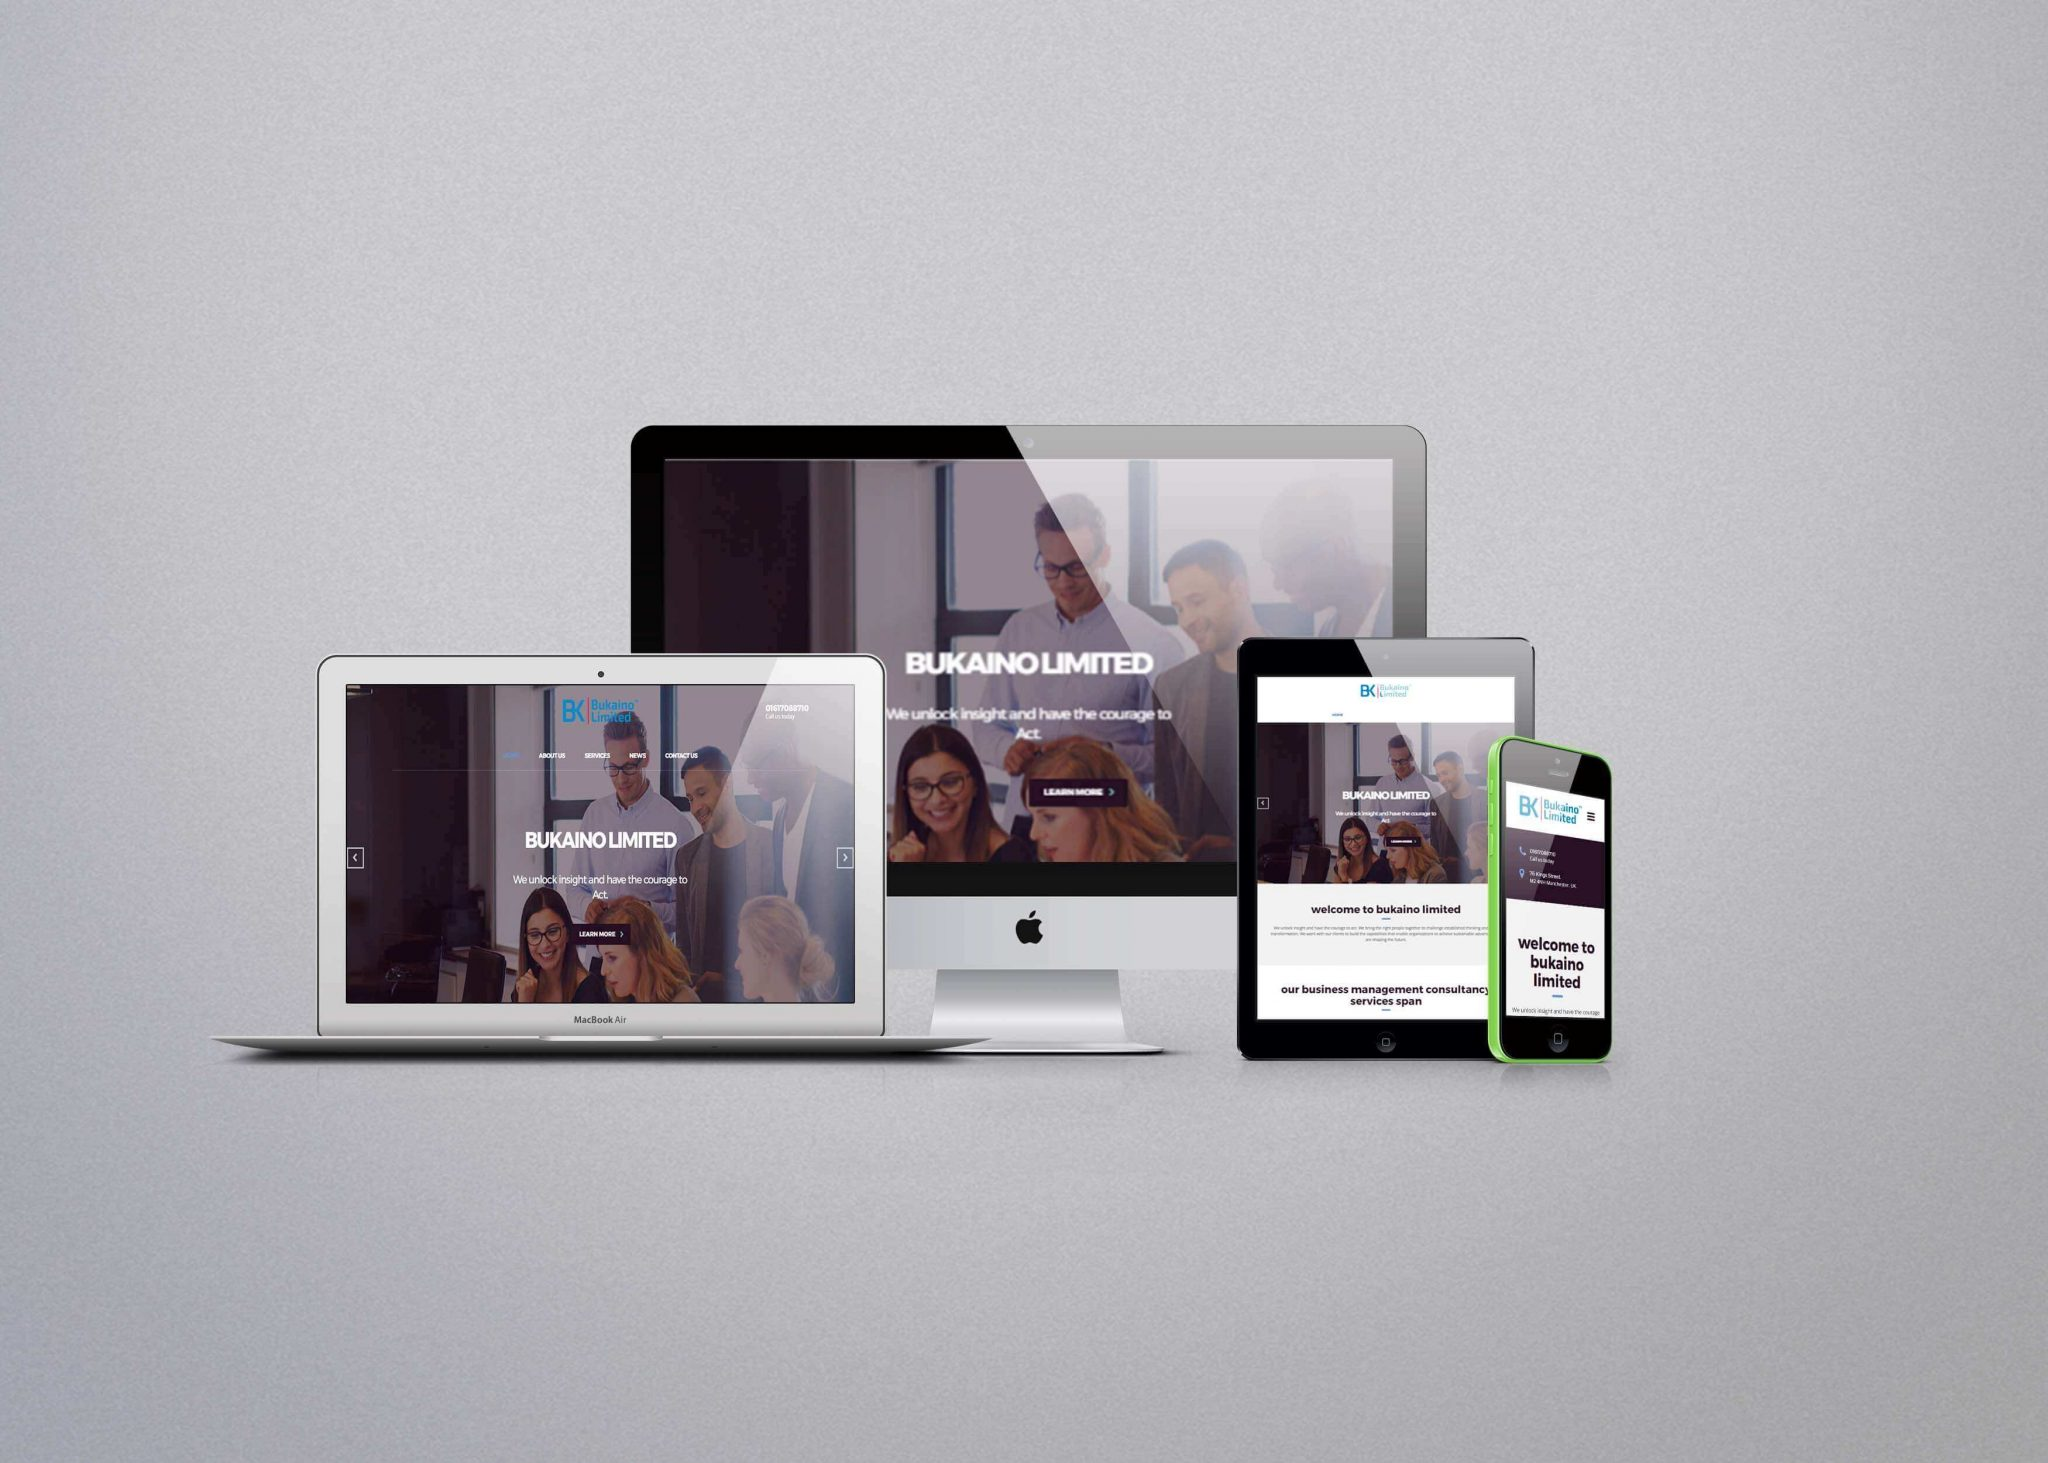 Bukaino limited website design and development aggital for Apartment design and development ltd